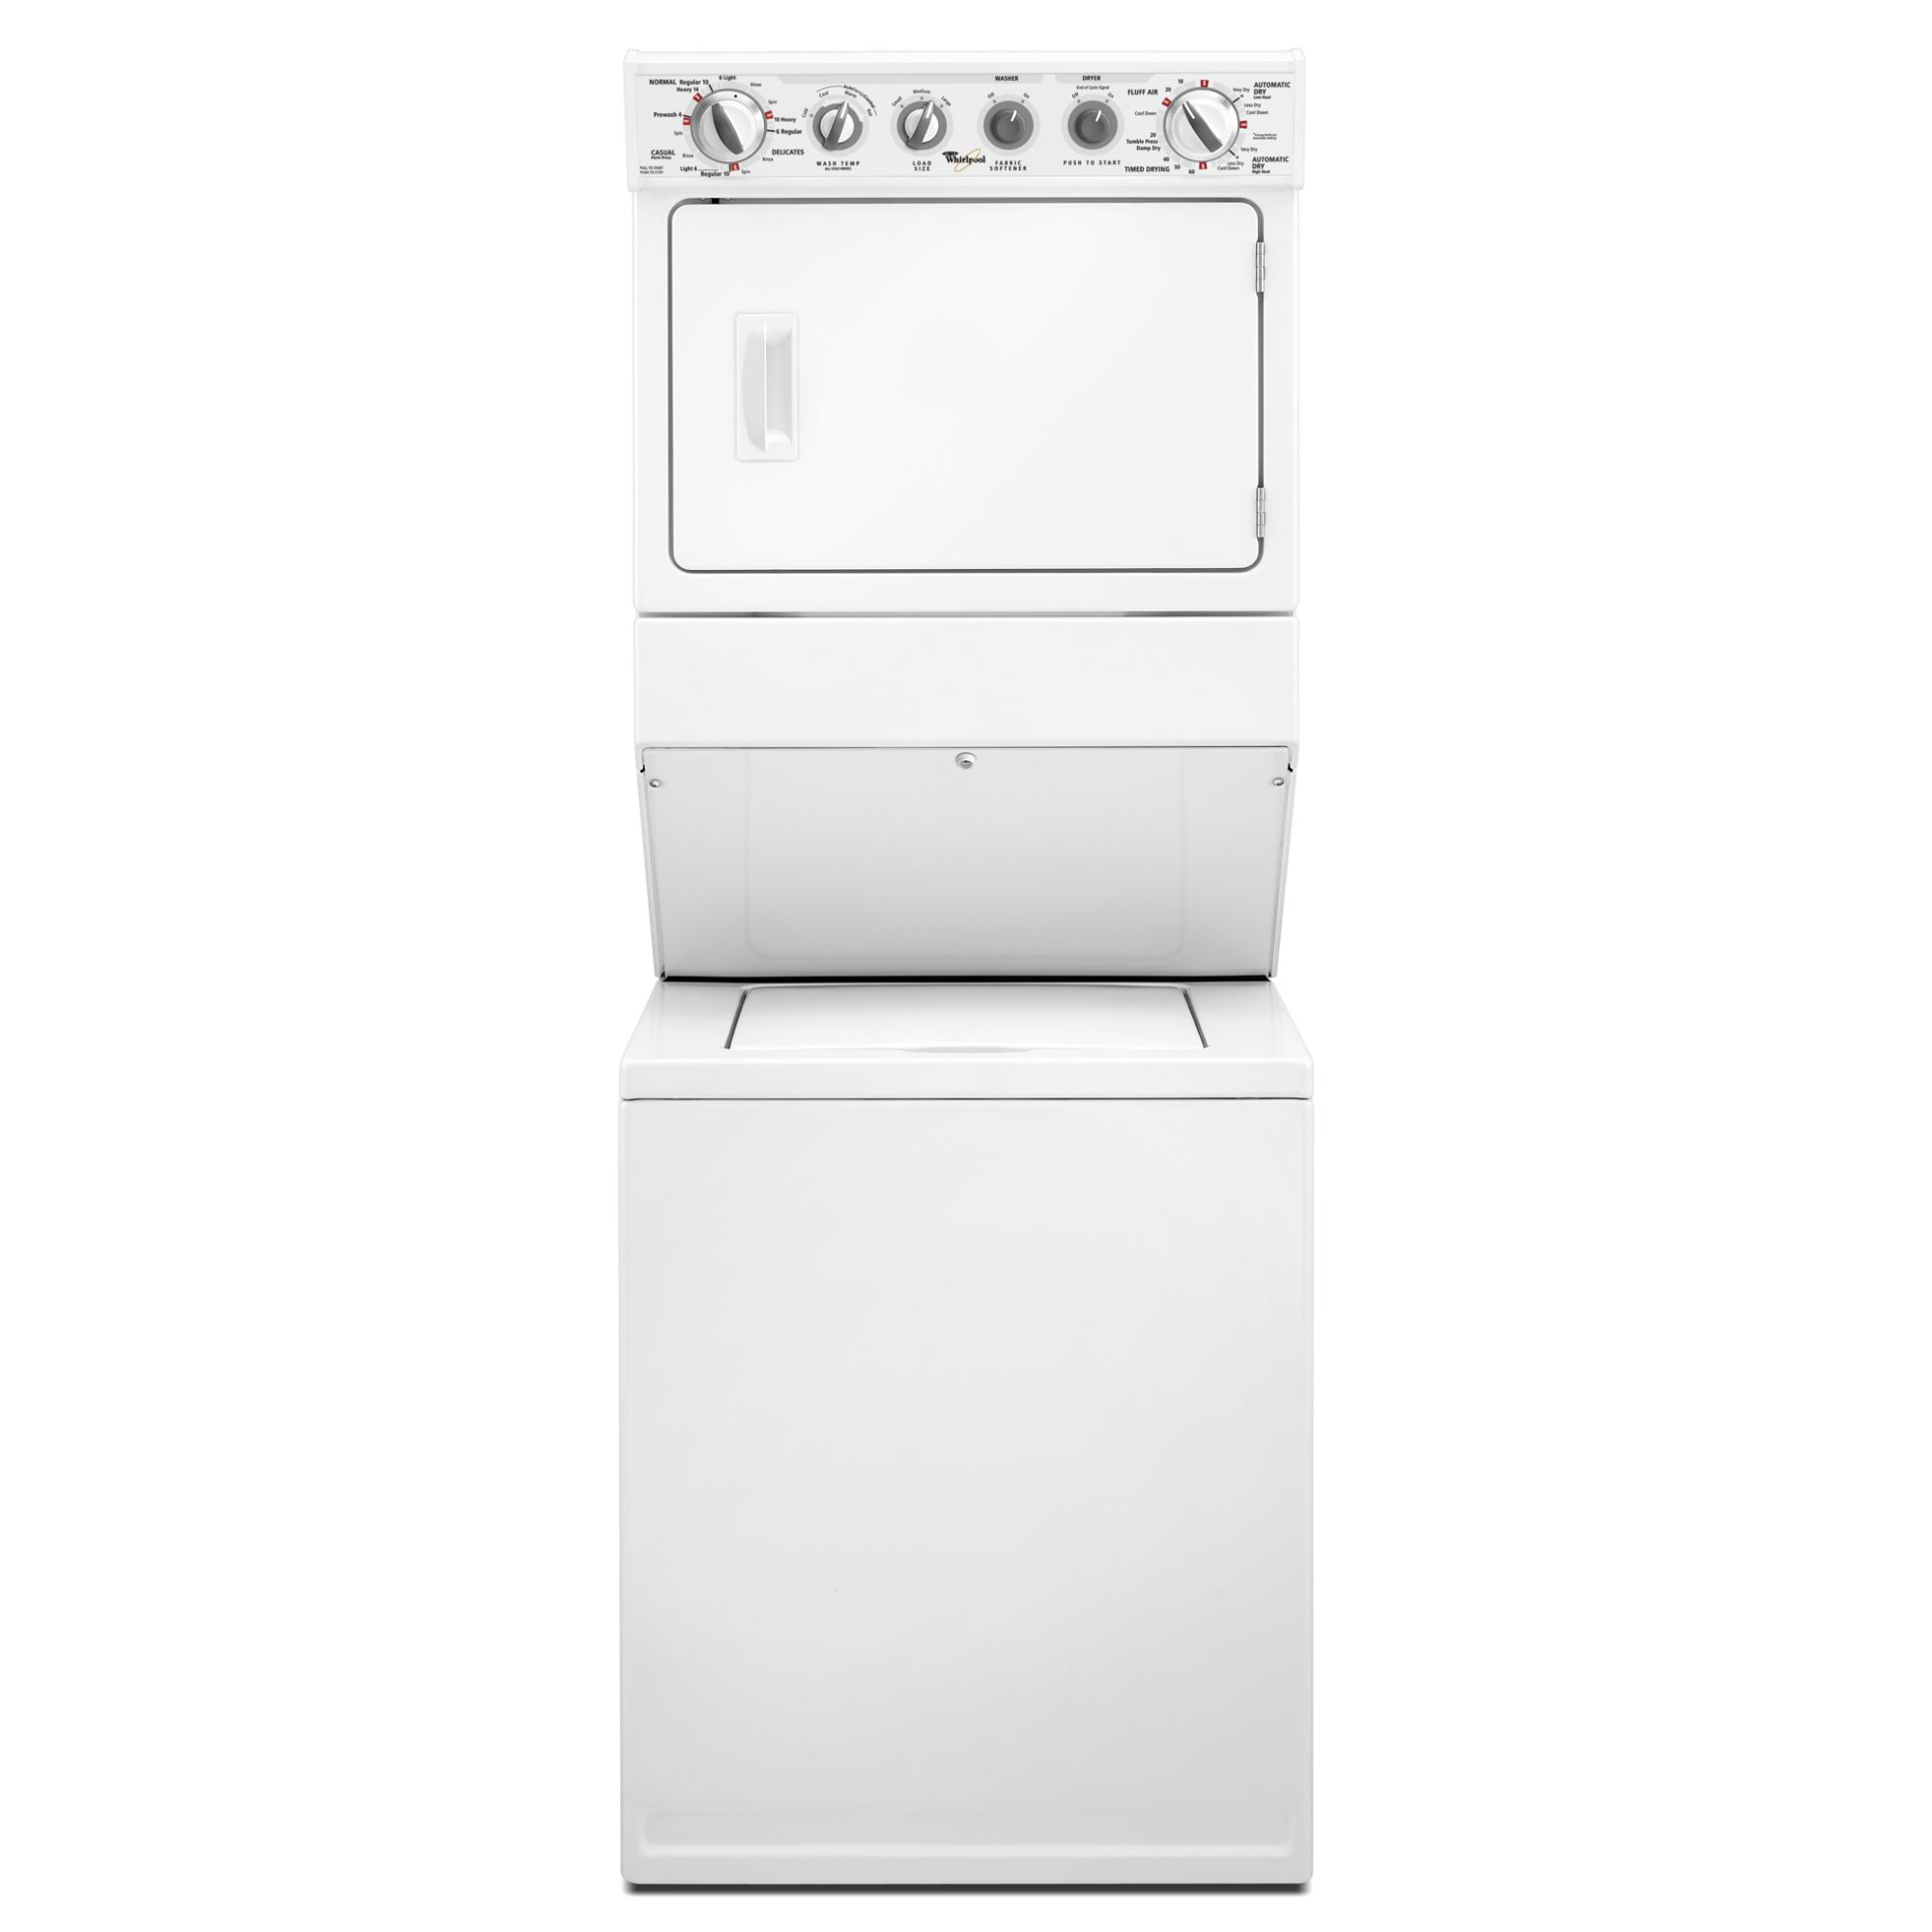 Whirlpool  27'' Laundry Center w/ Gas Dryer